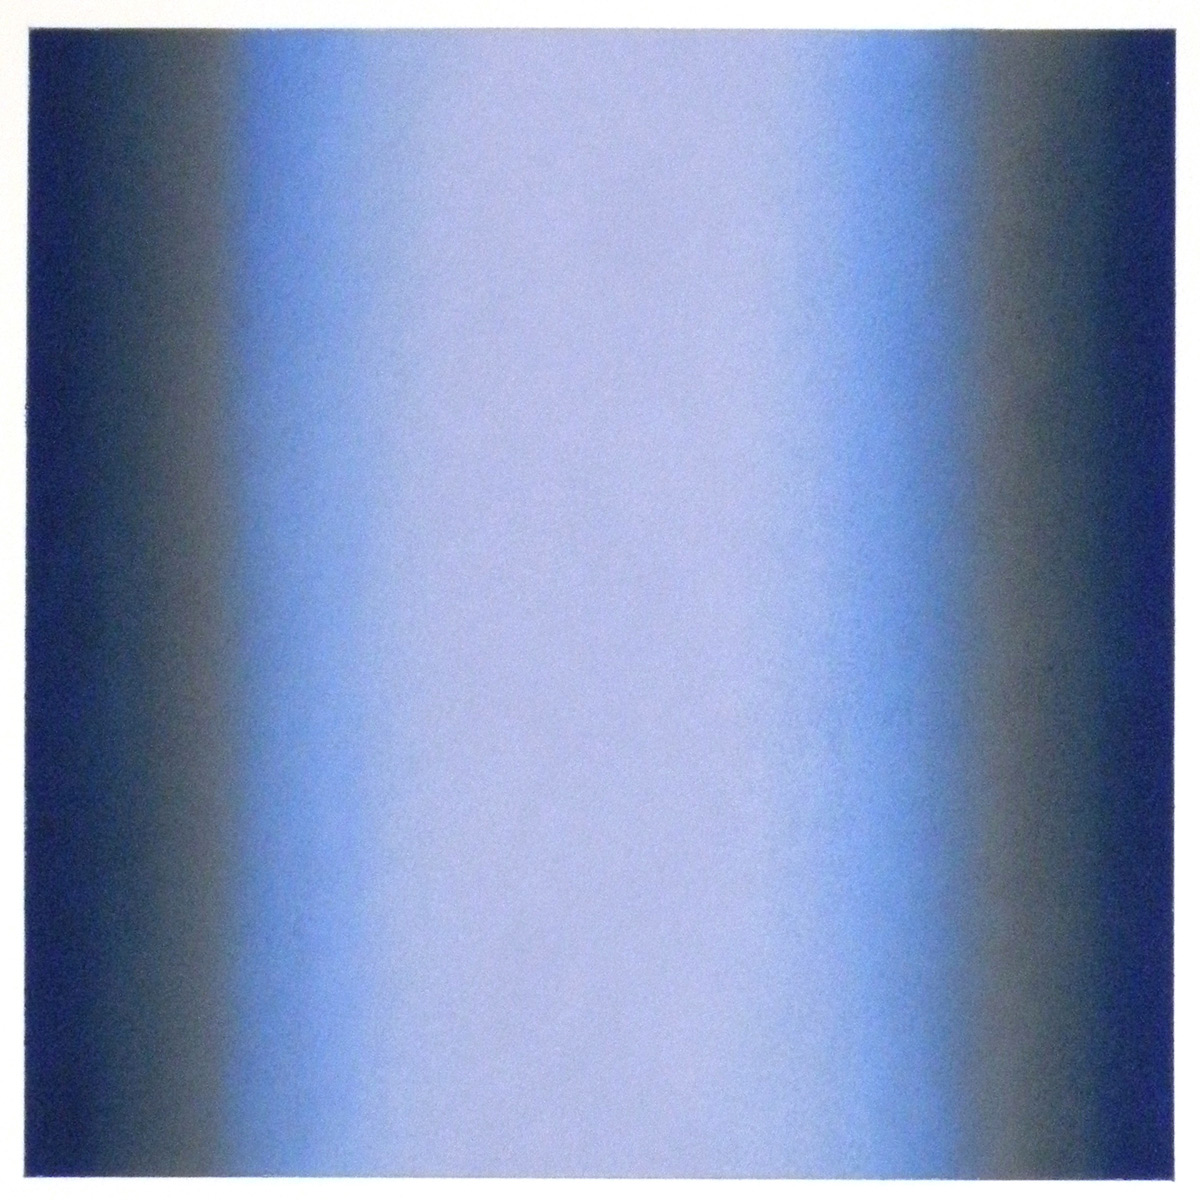 Cool-Light Blue-Prussian, Warm-Light Cool-Light Series, 2012, pastel on paper, image: 14 x 14 in. (36 x 36 cm.), sheet: 30 x 22 in. (76 x 56 cm.)